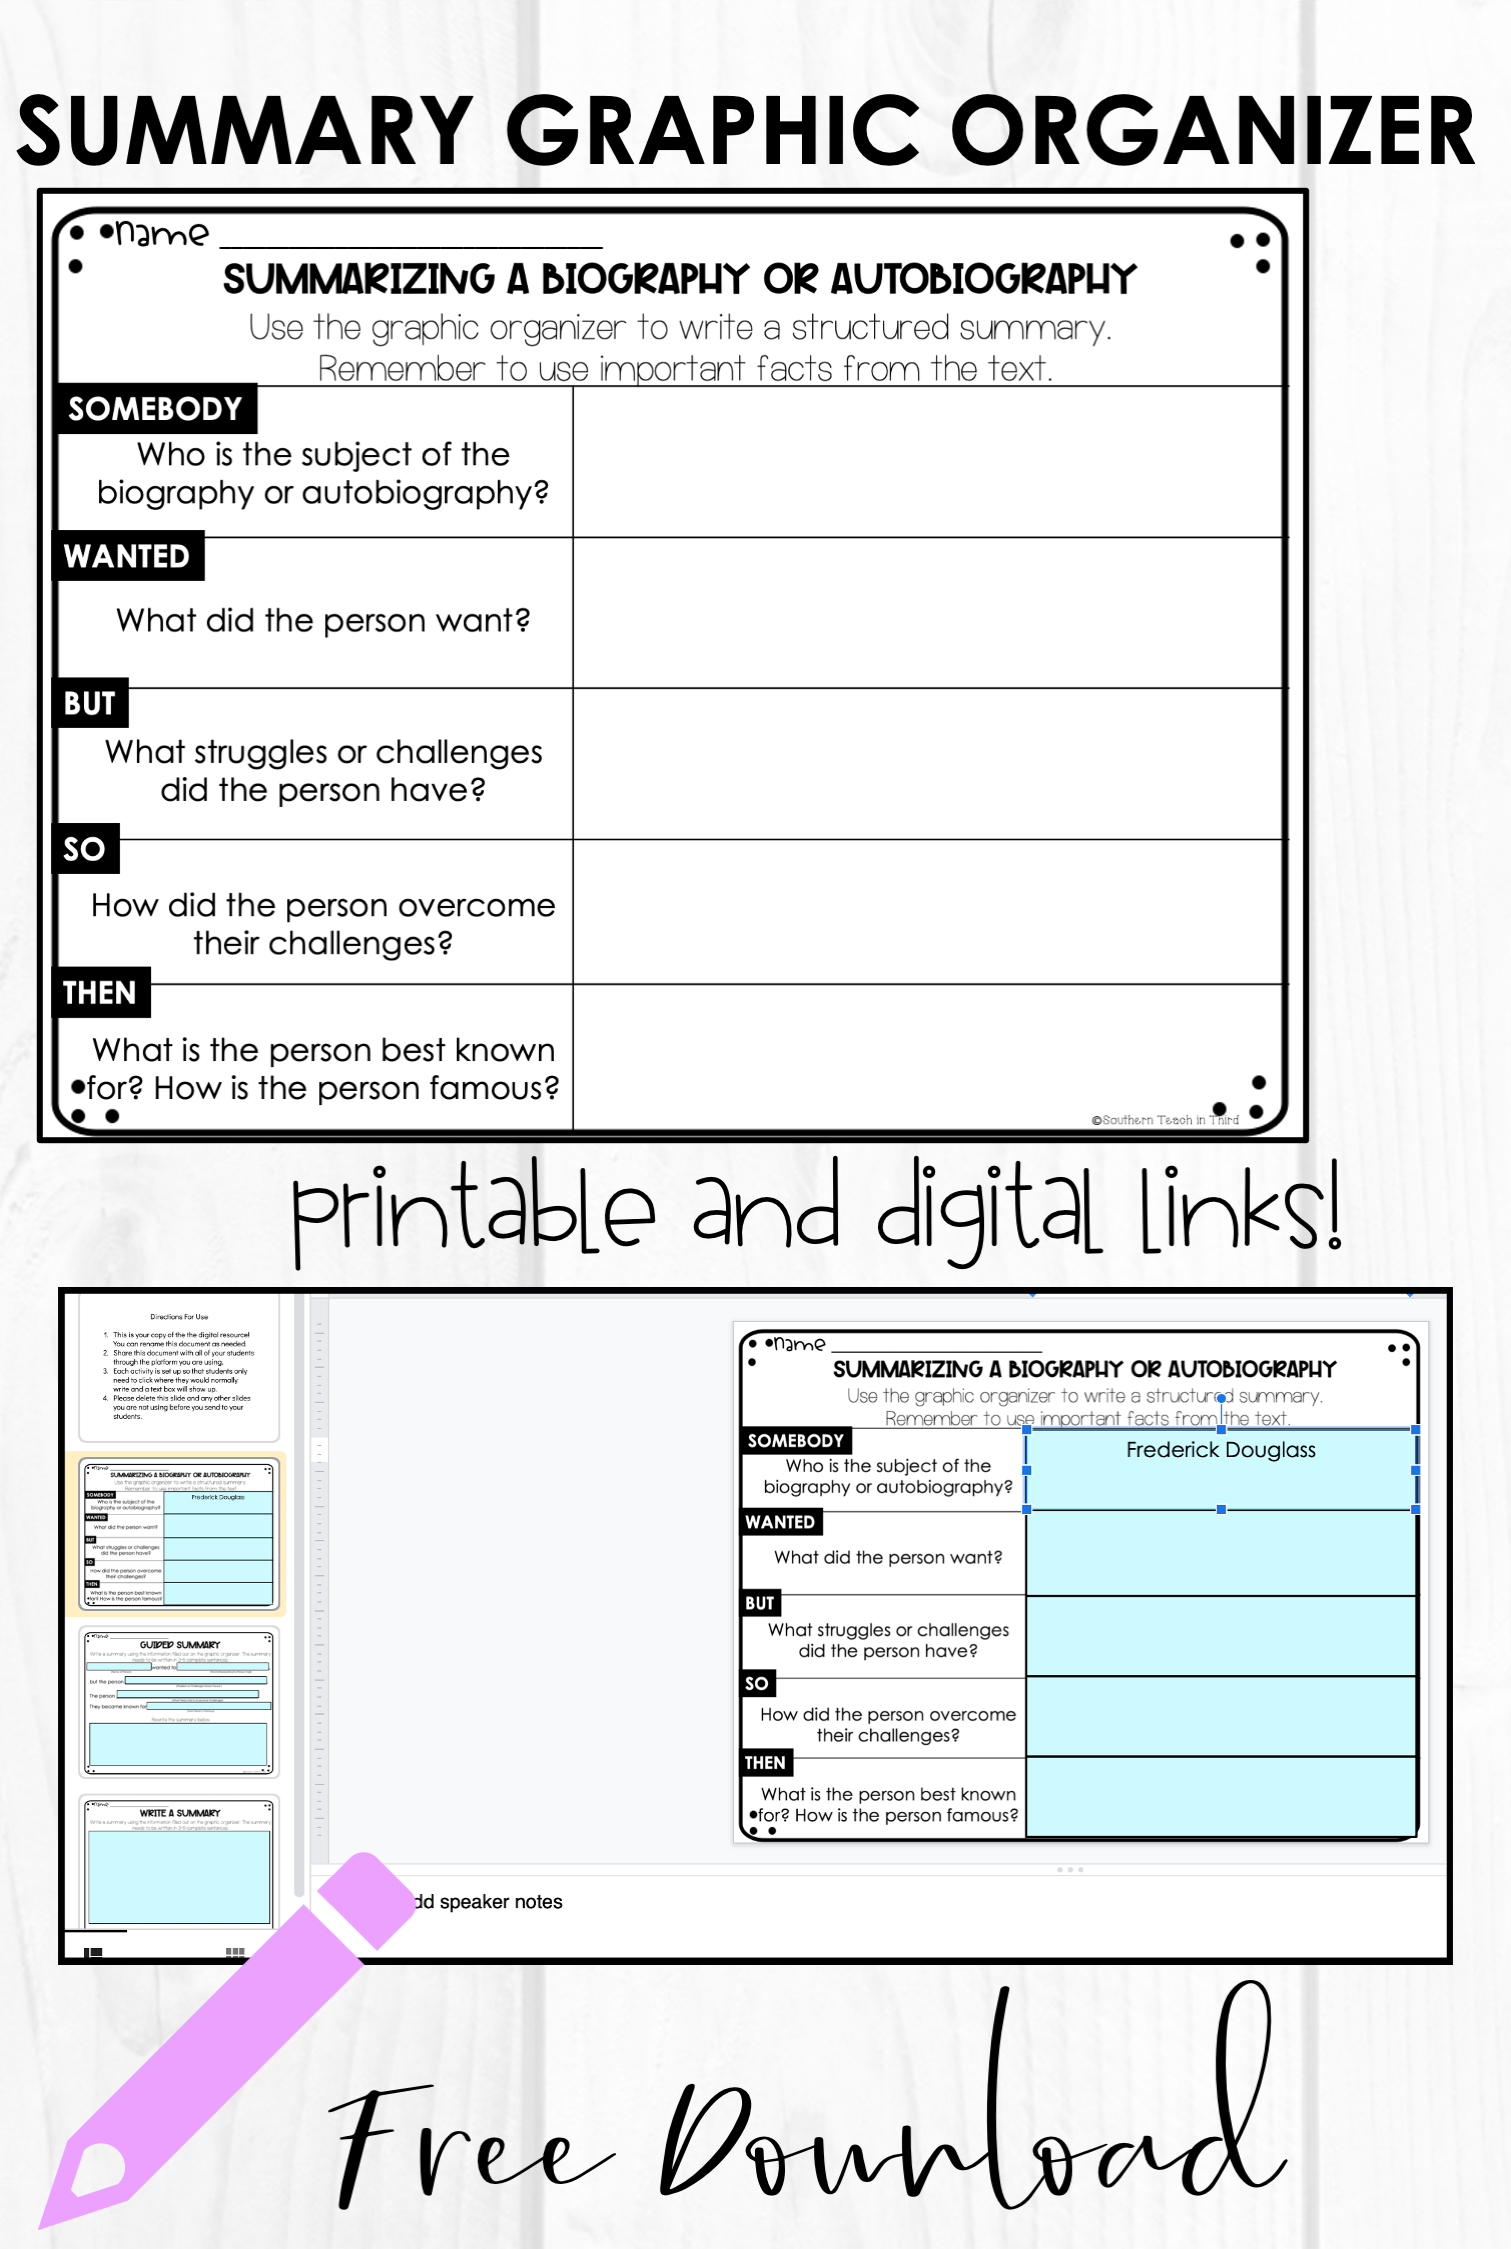 Summary Graphic Organizer For Biographies And